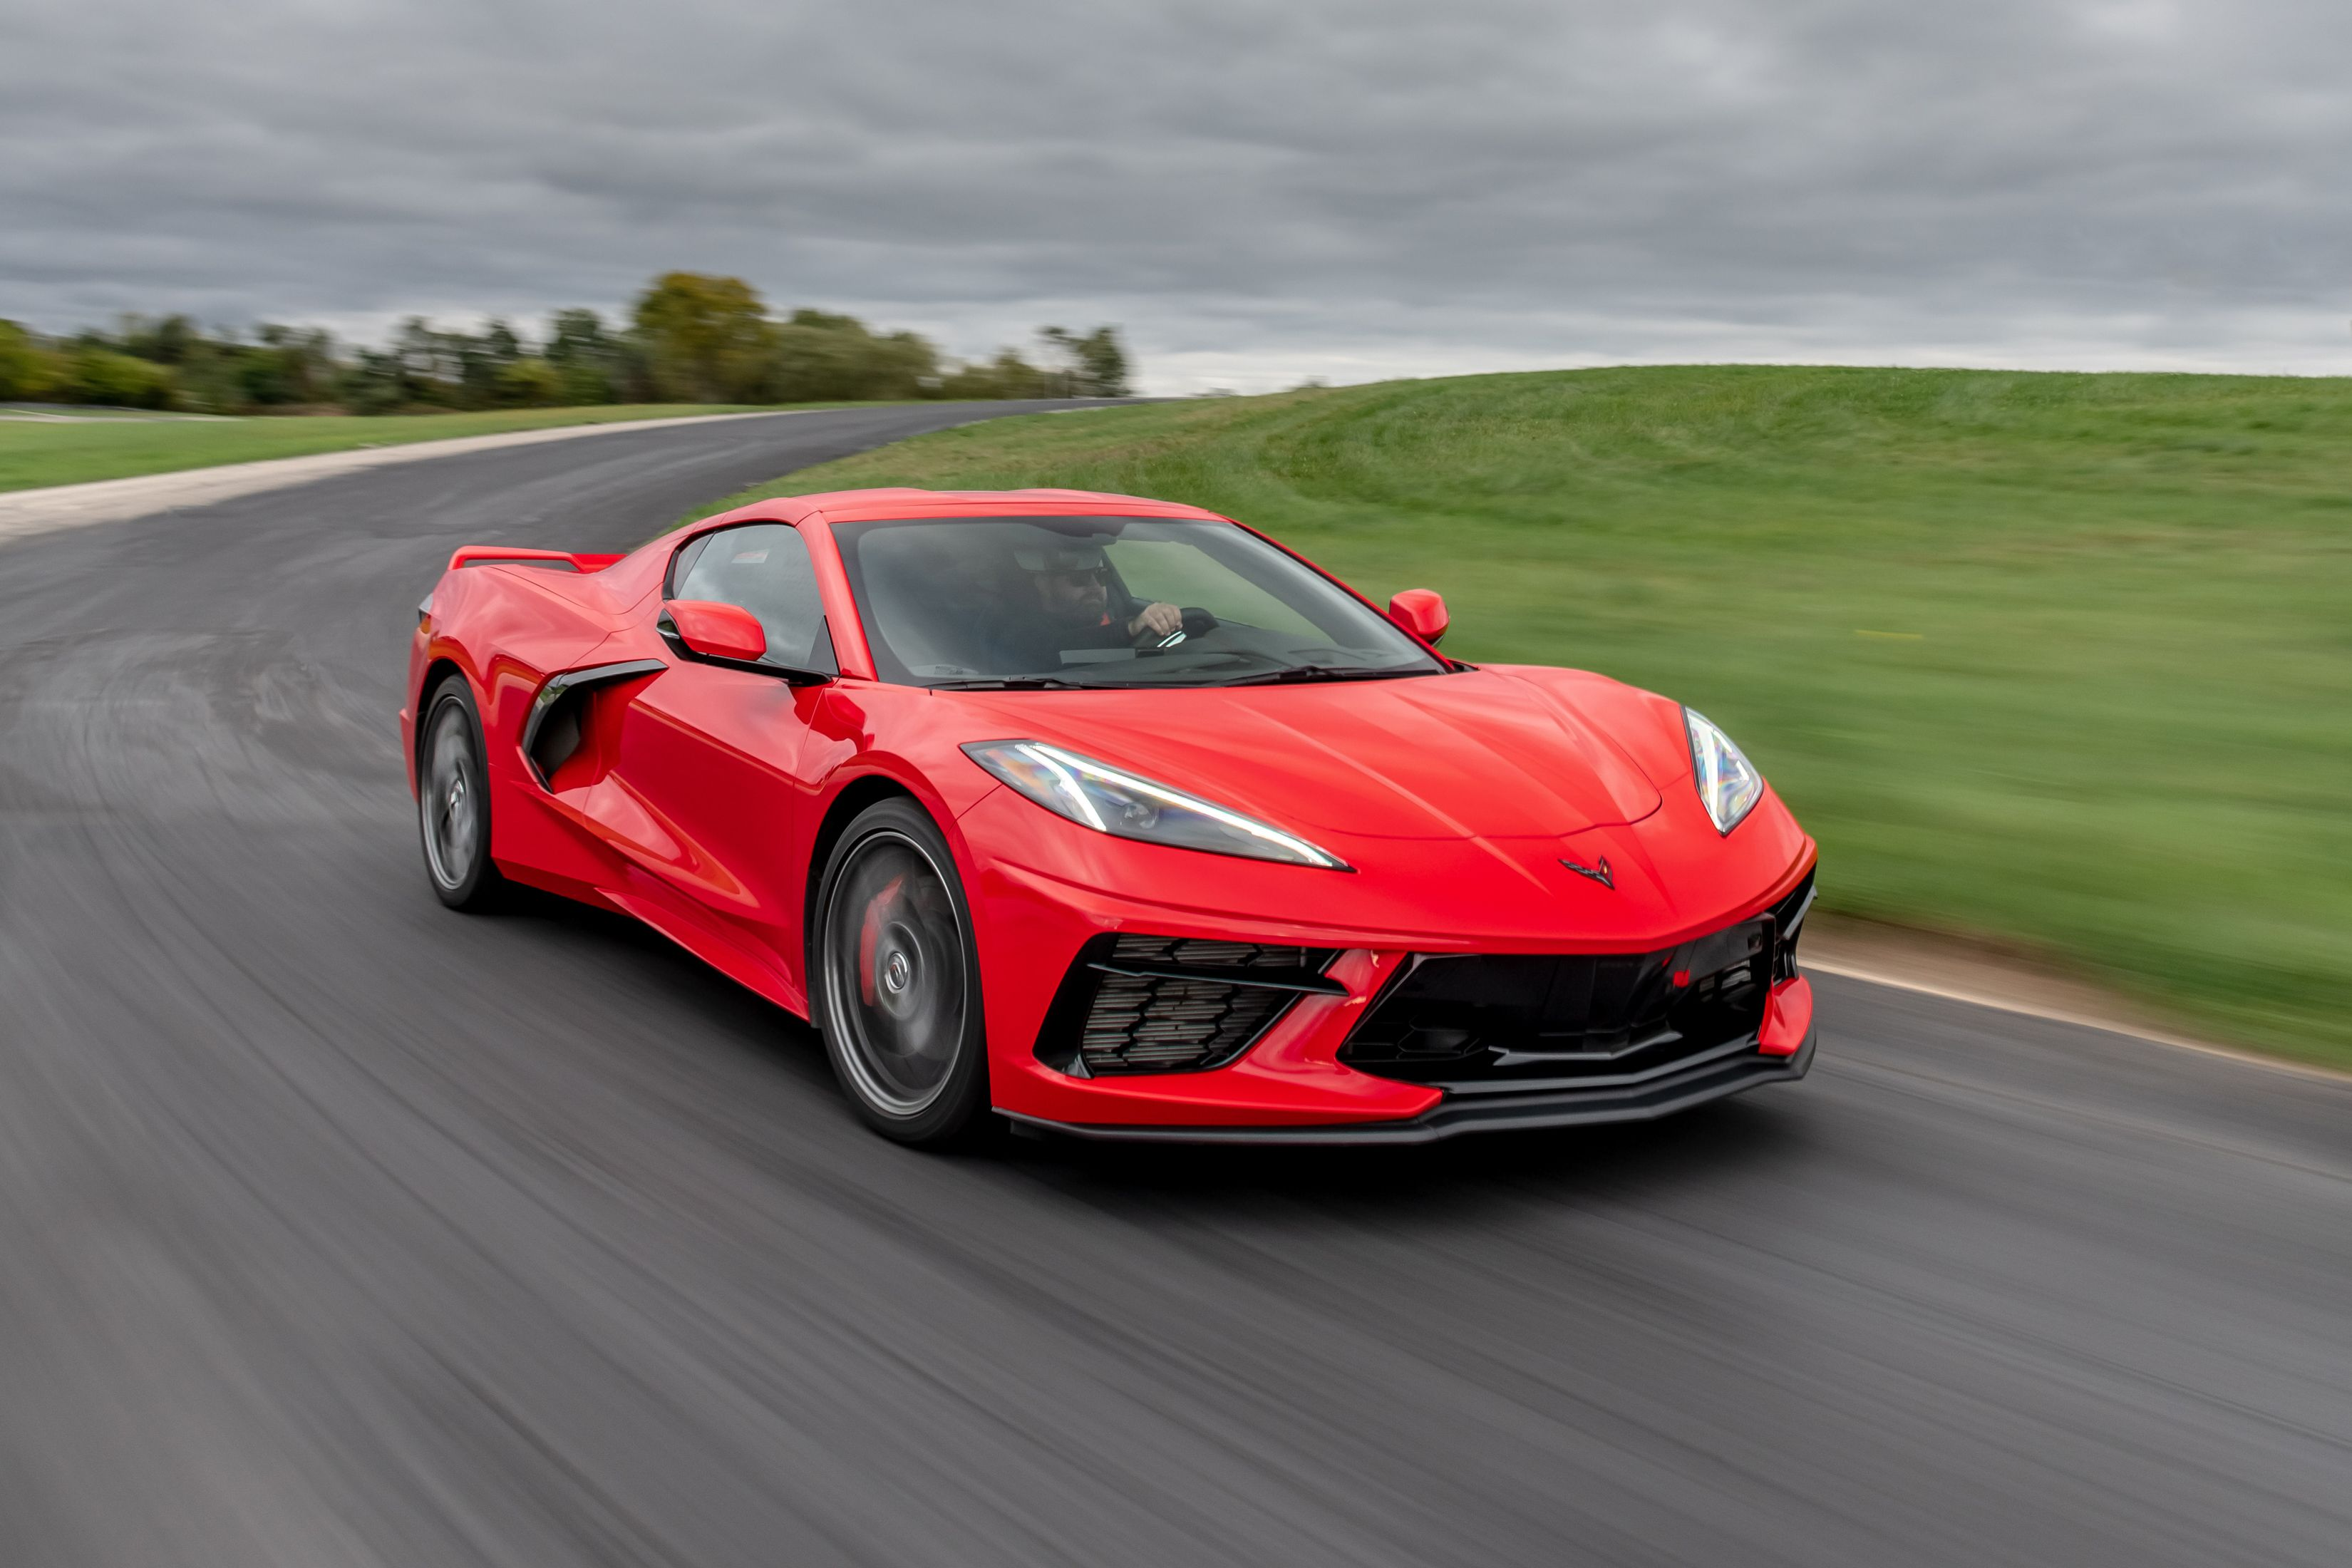 New Corvette 2020.2020 Chevrolet Corvette Is More Than The Best Corvette Ever